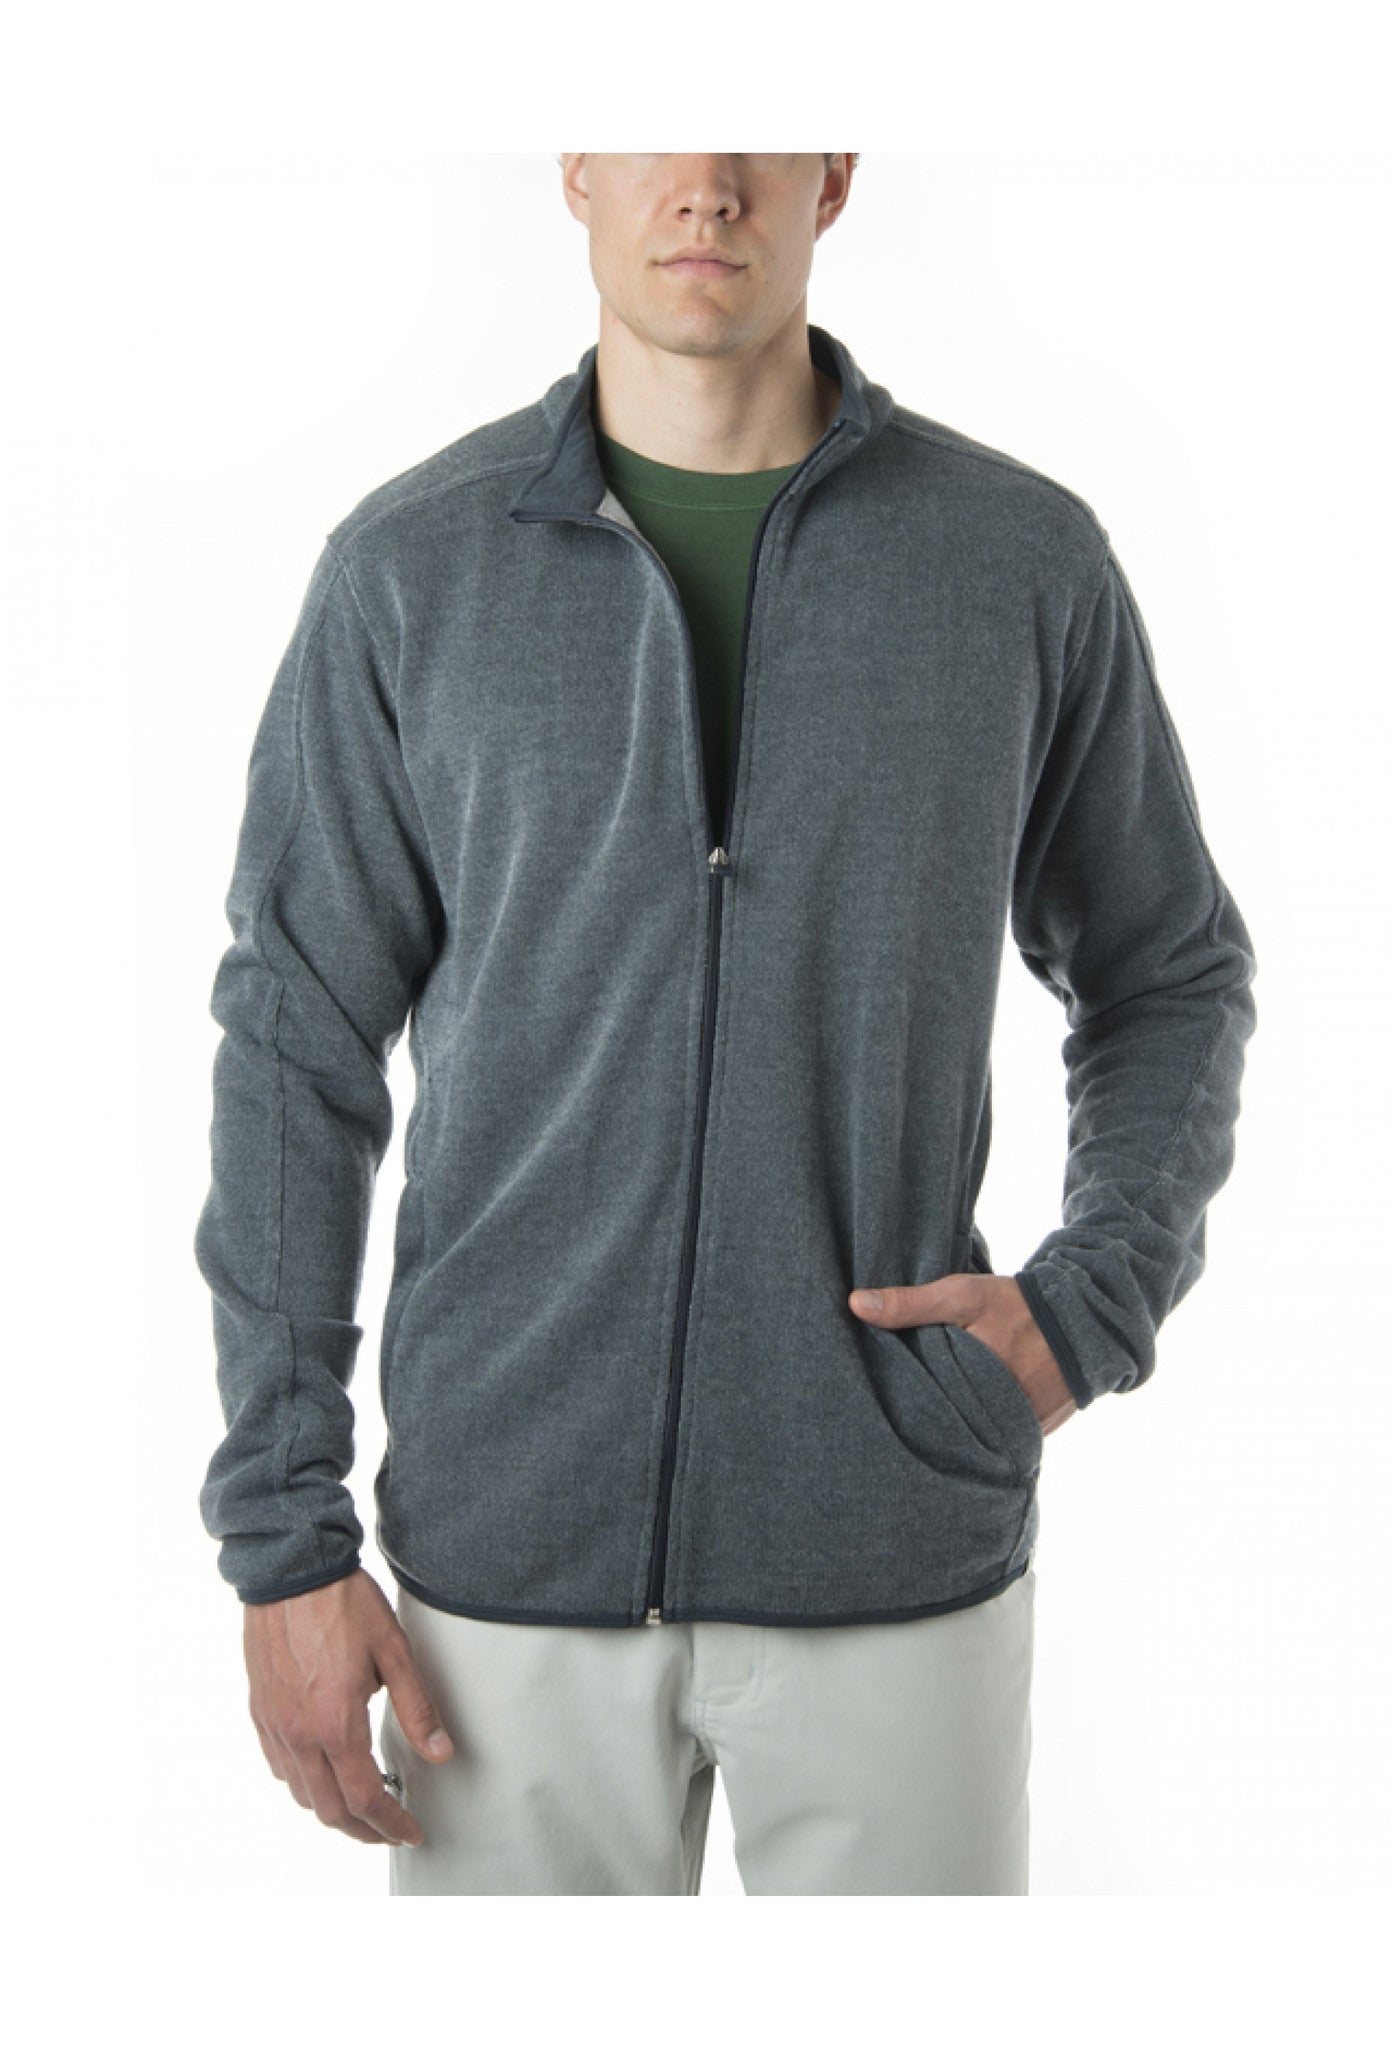 Tasc Performance Transcend Fleece Jacket T-M-390